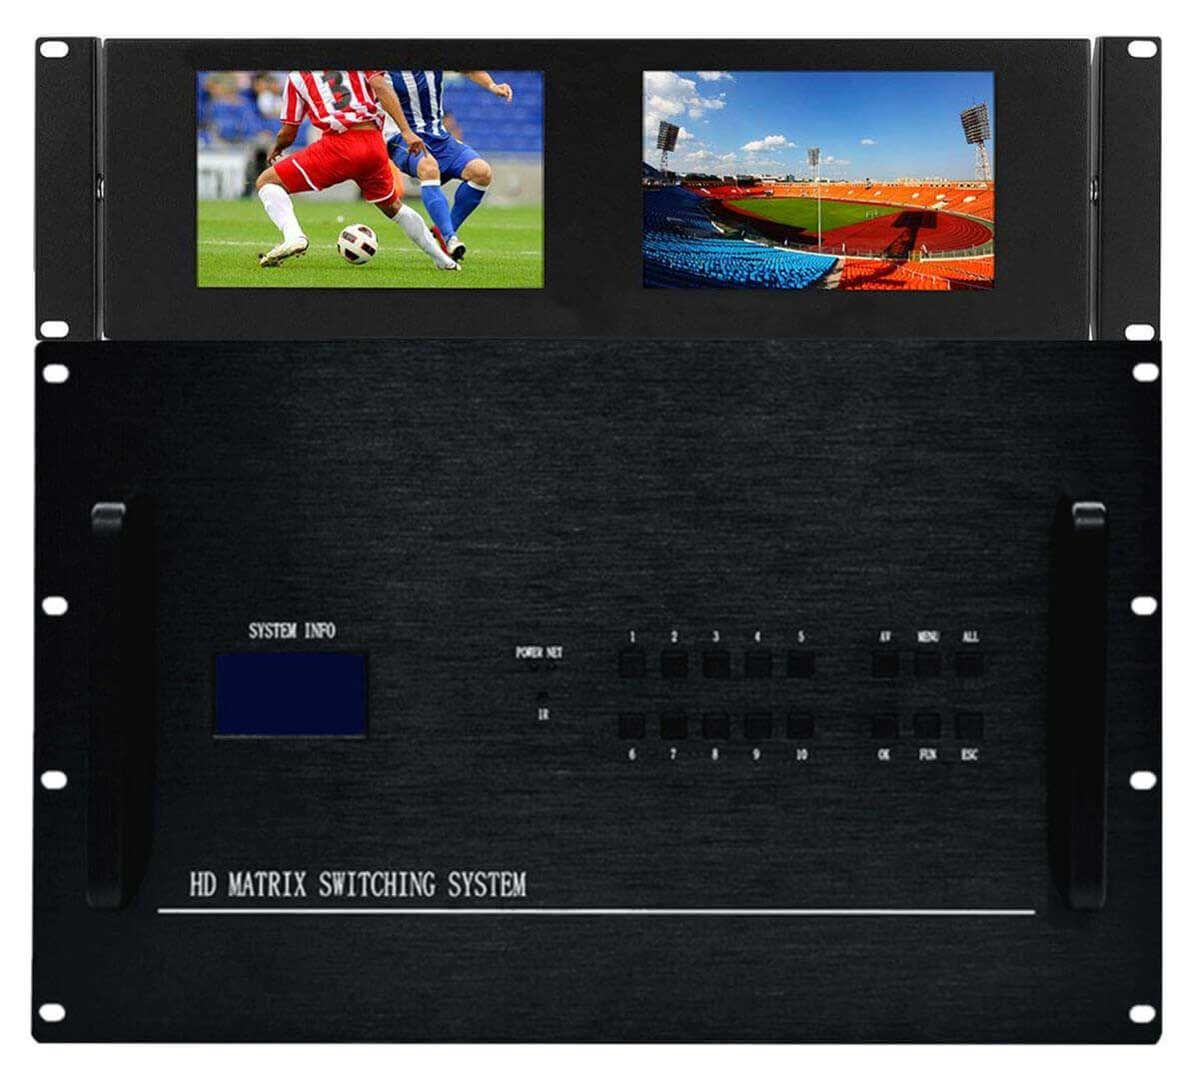 4K 12x20 HDMI Matrix HDBaseT Switch with 20-CAT5 Extenders